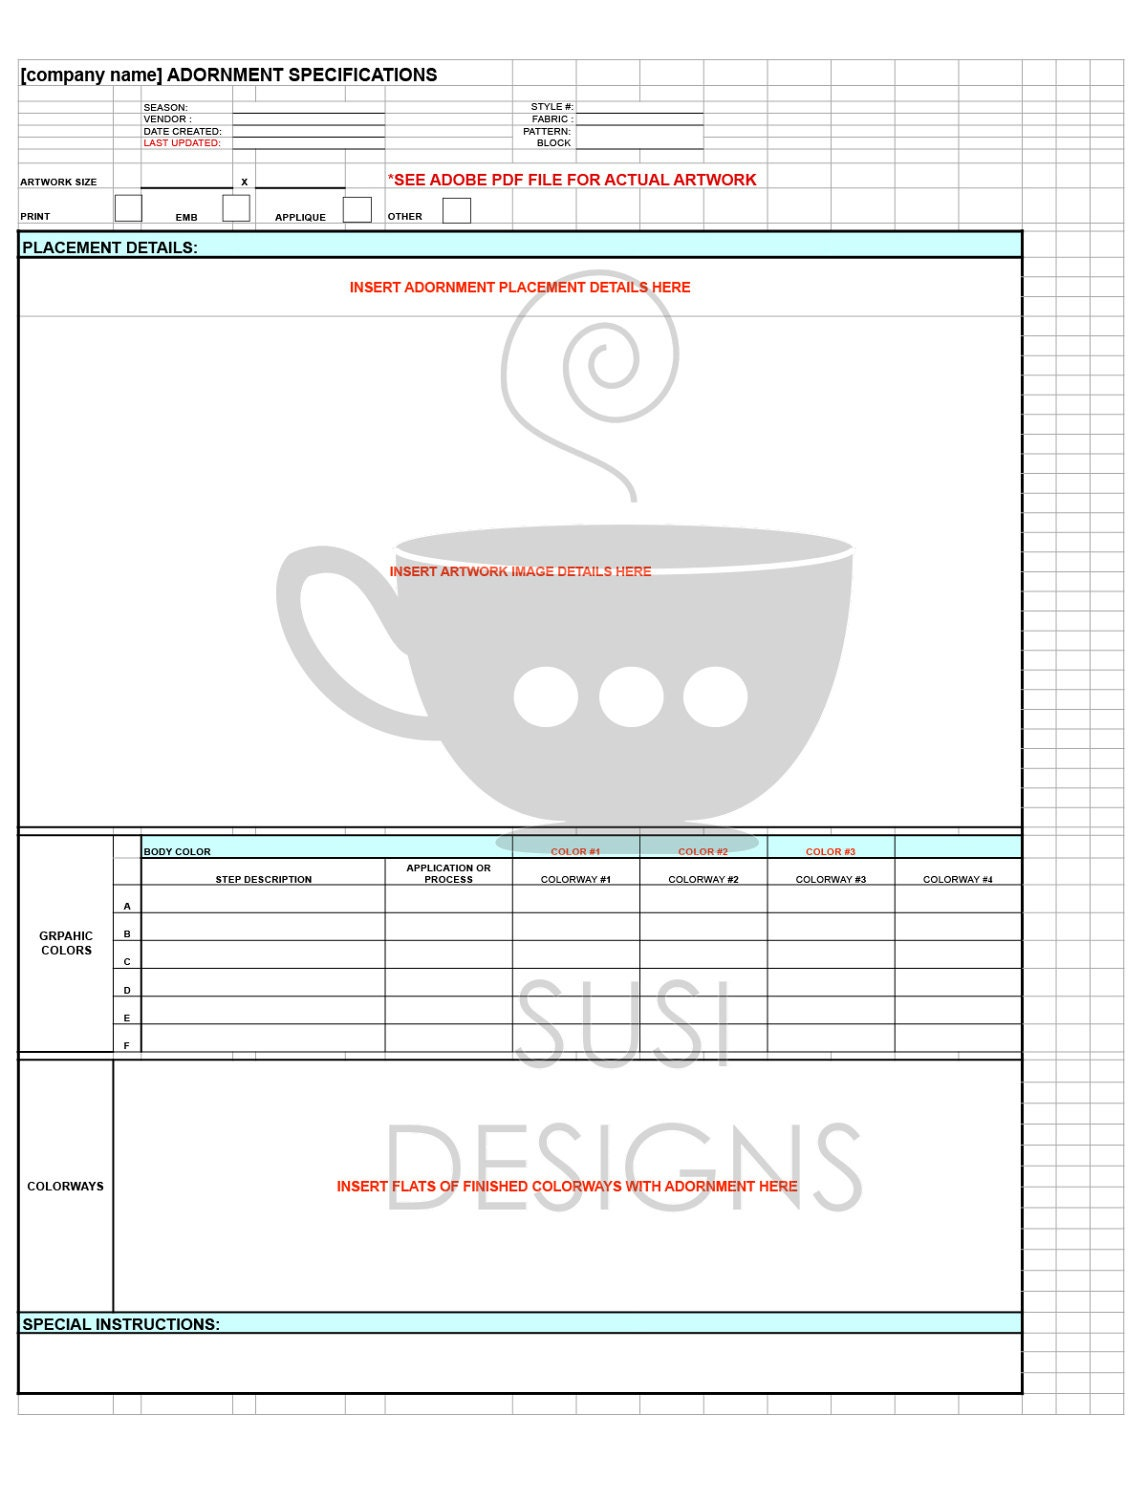 Technical Specification Sheet Templates for Fashion Design - Basic ...